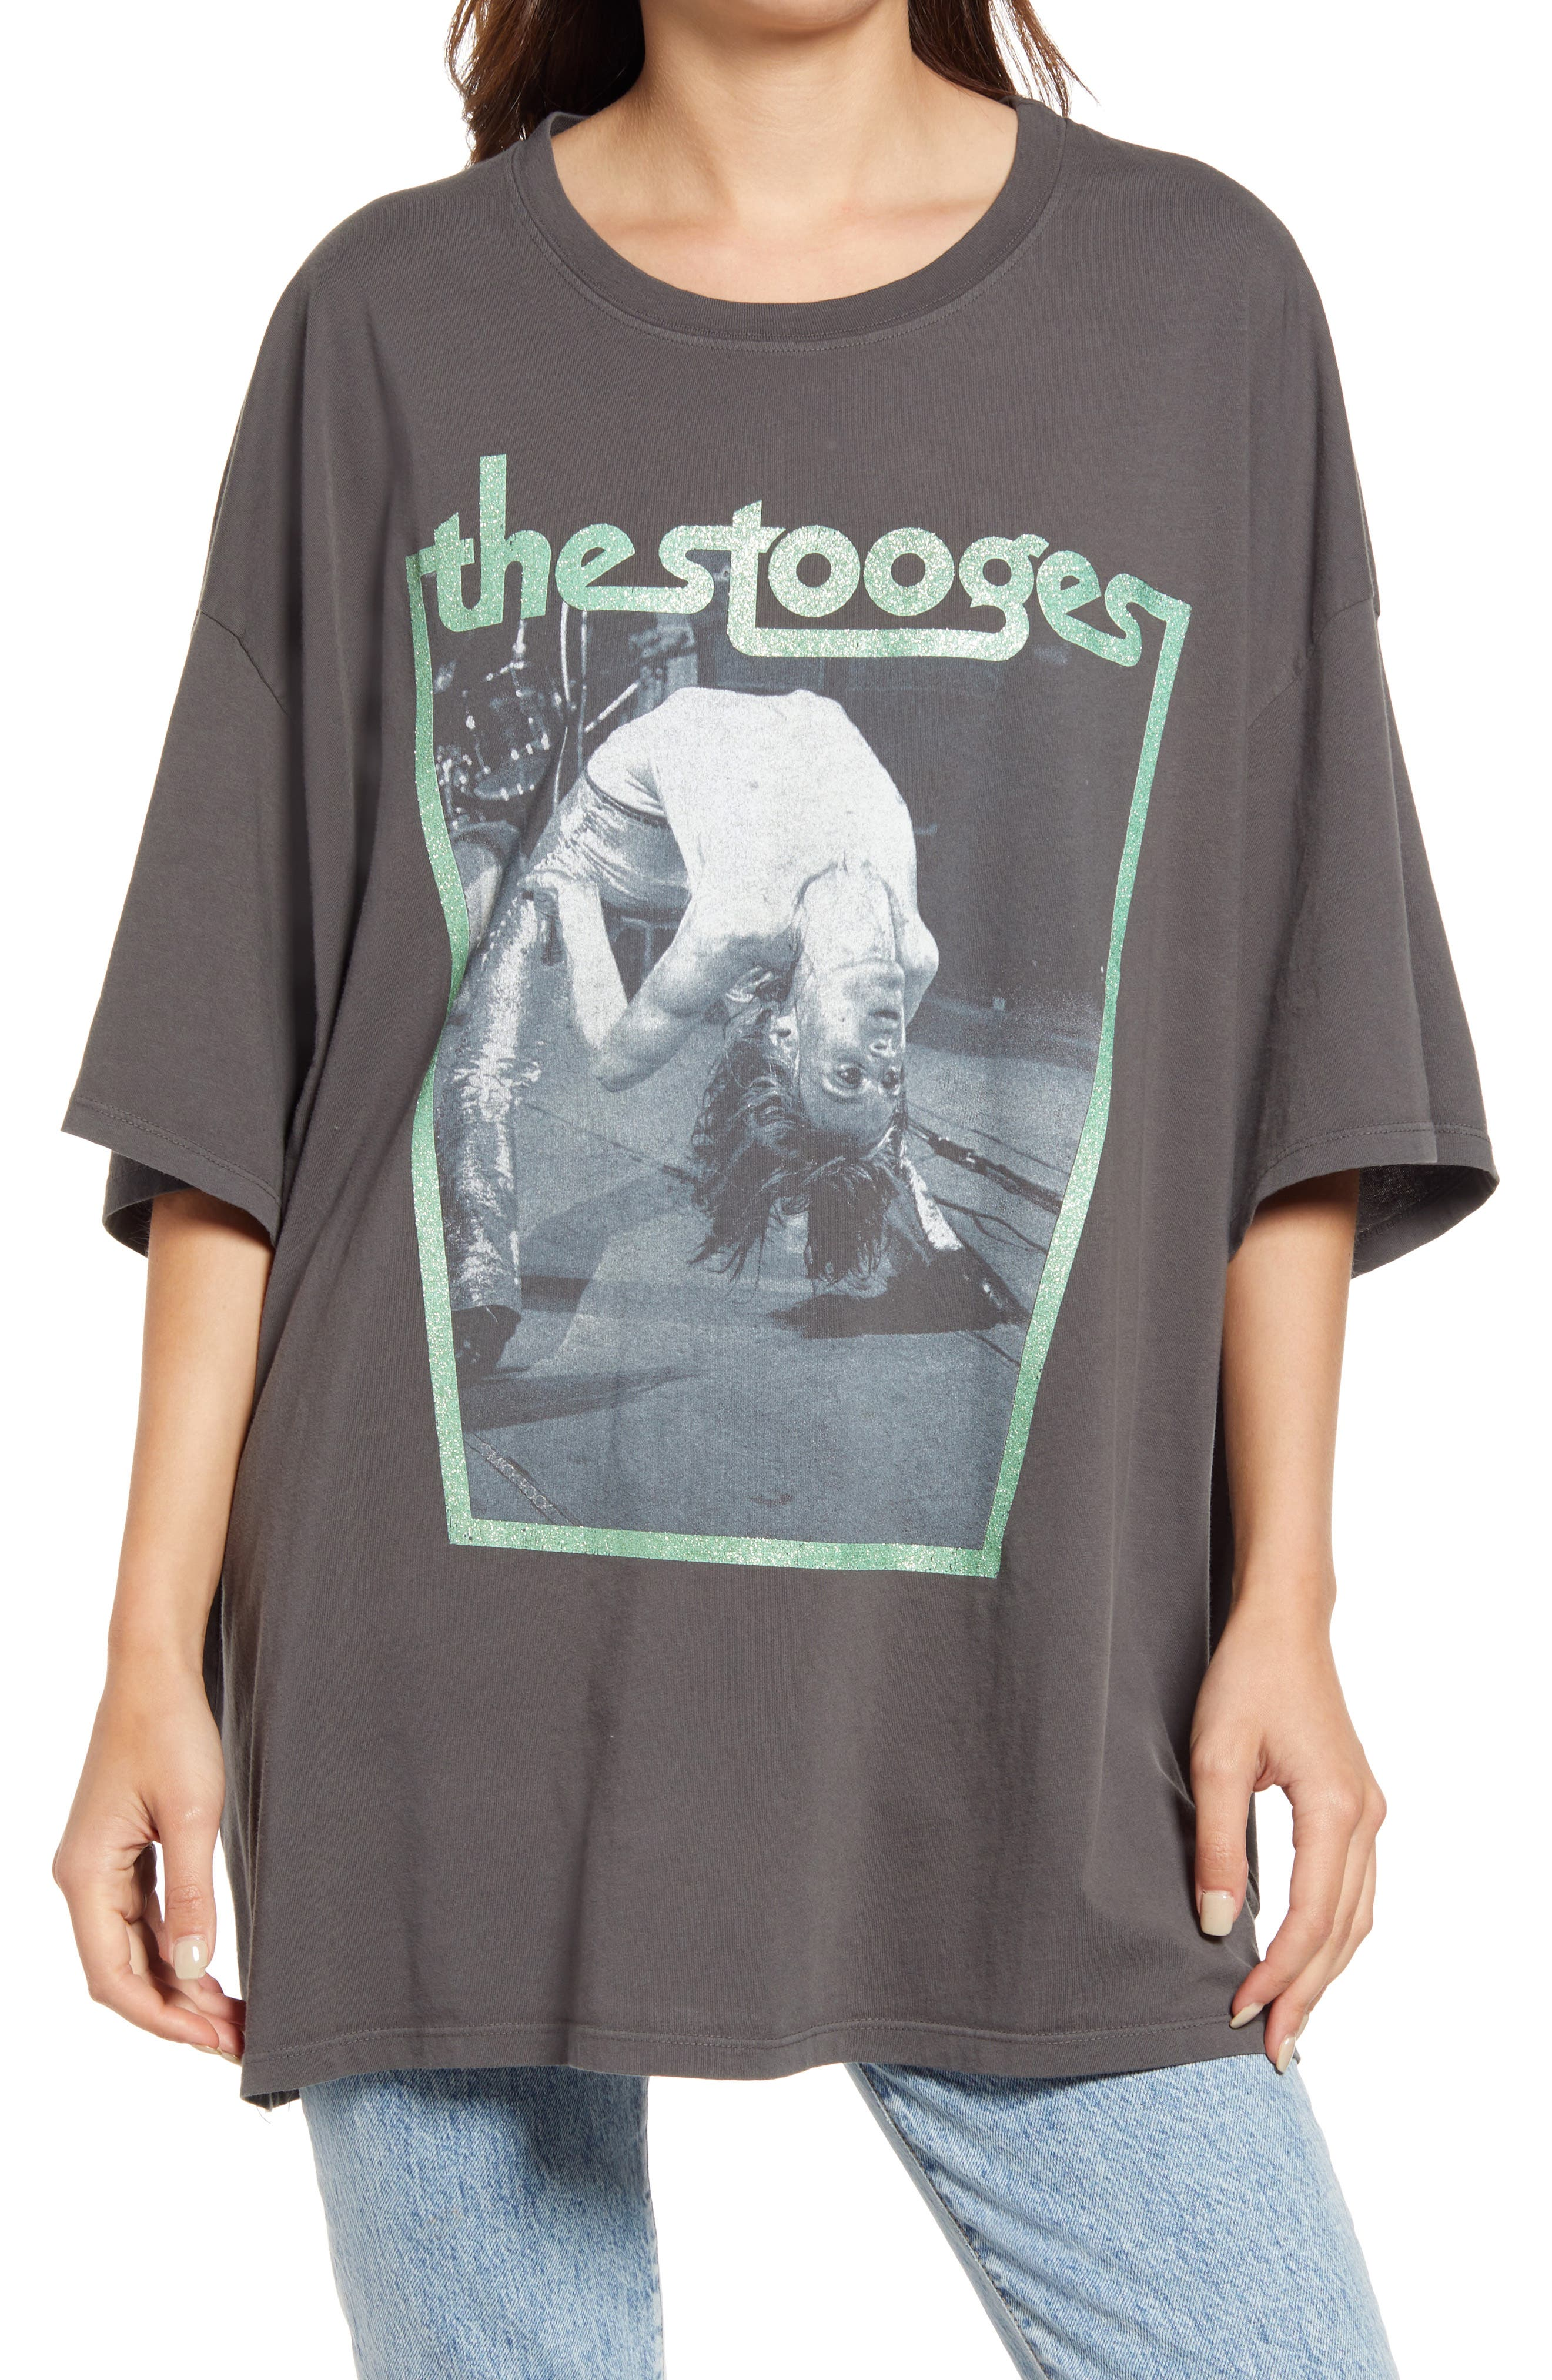 The Stooges 1969 Graphic Tee